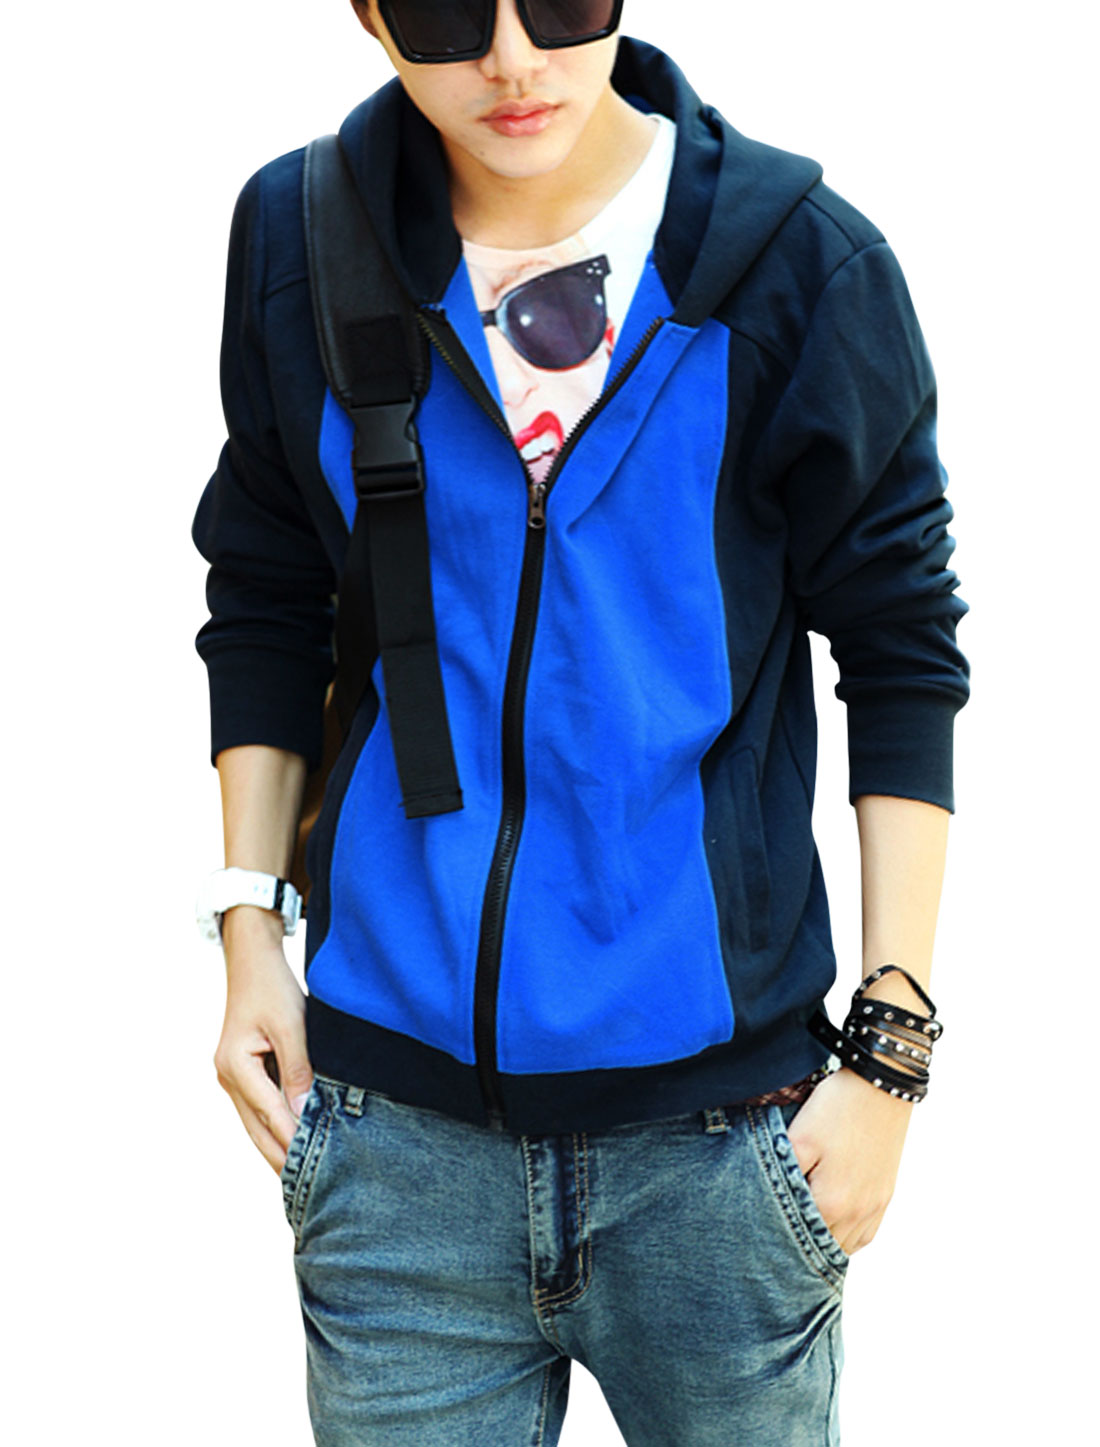 Men Contrast Color Zipper Closure Elastic Cuffs Hooded Jacket Navy Blue Blue M